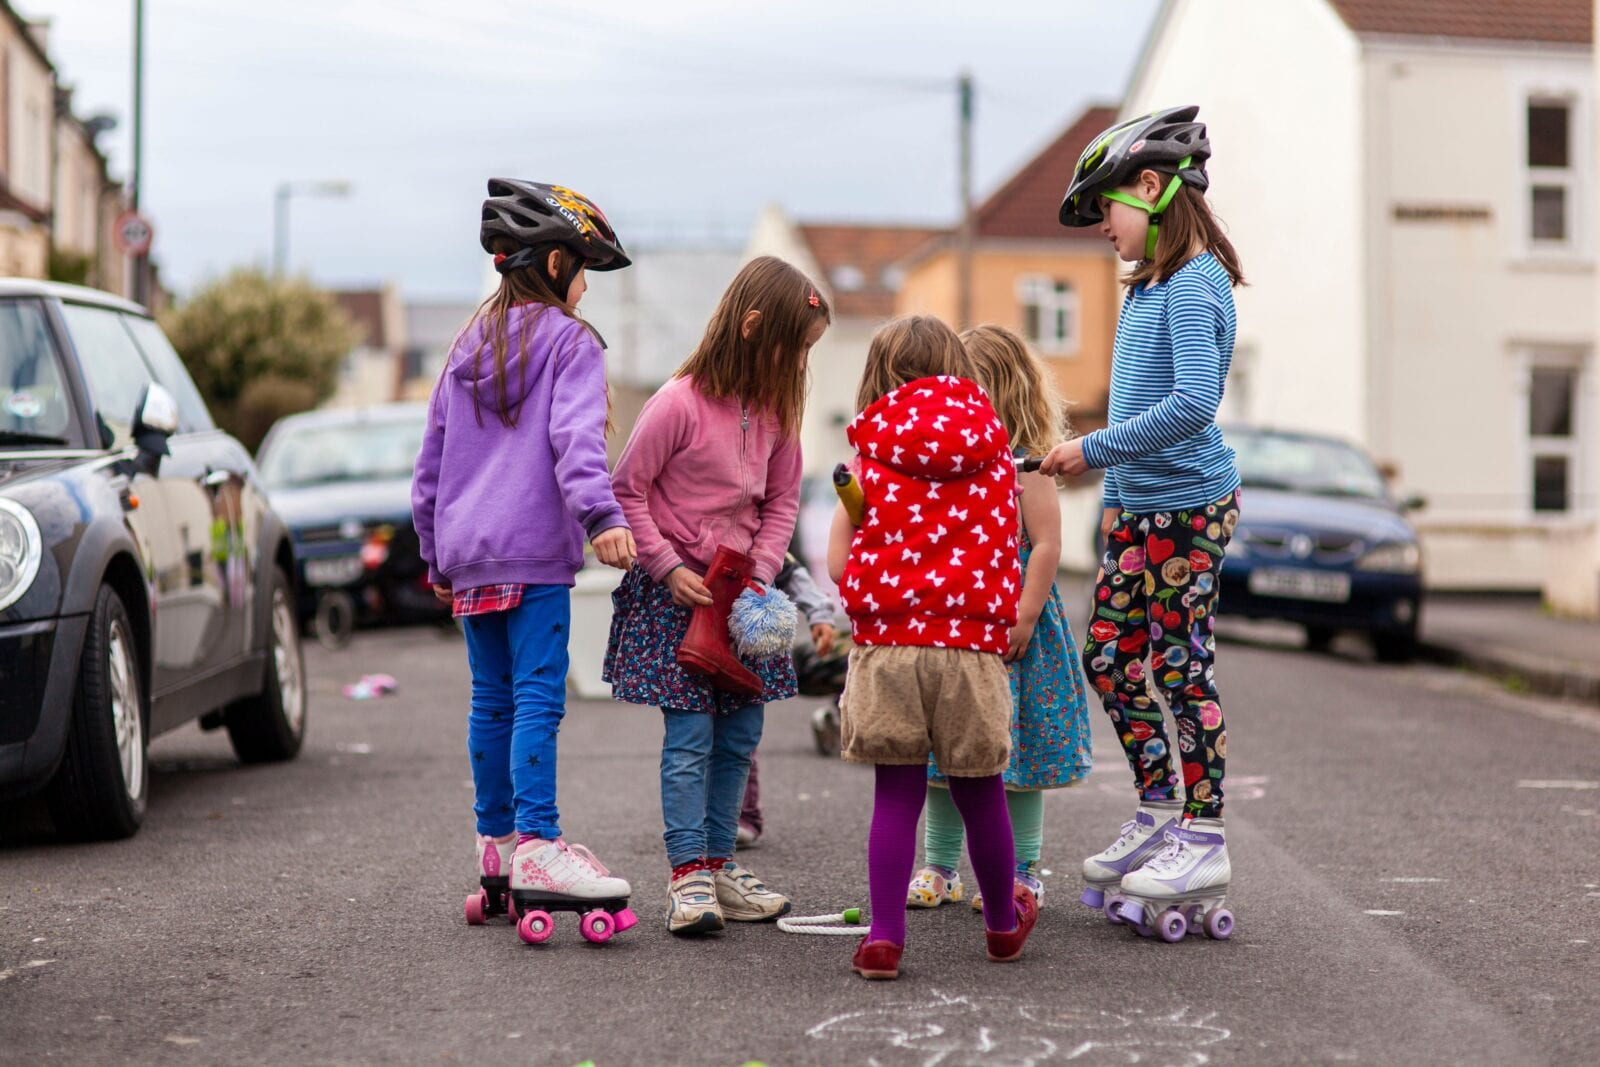 Salford set to see the return of 'play streets' after 90 years, The Manc